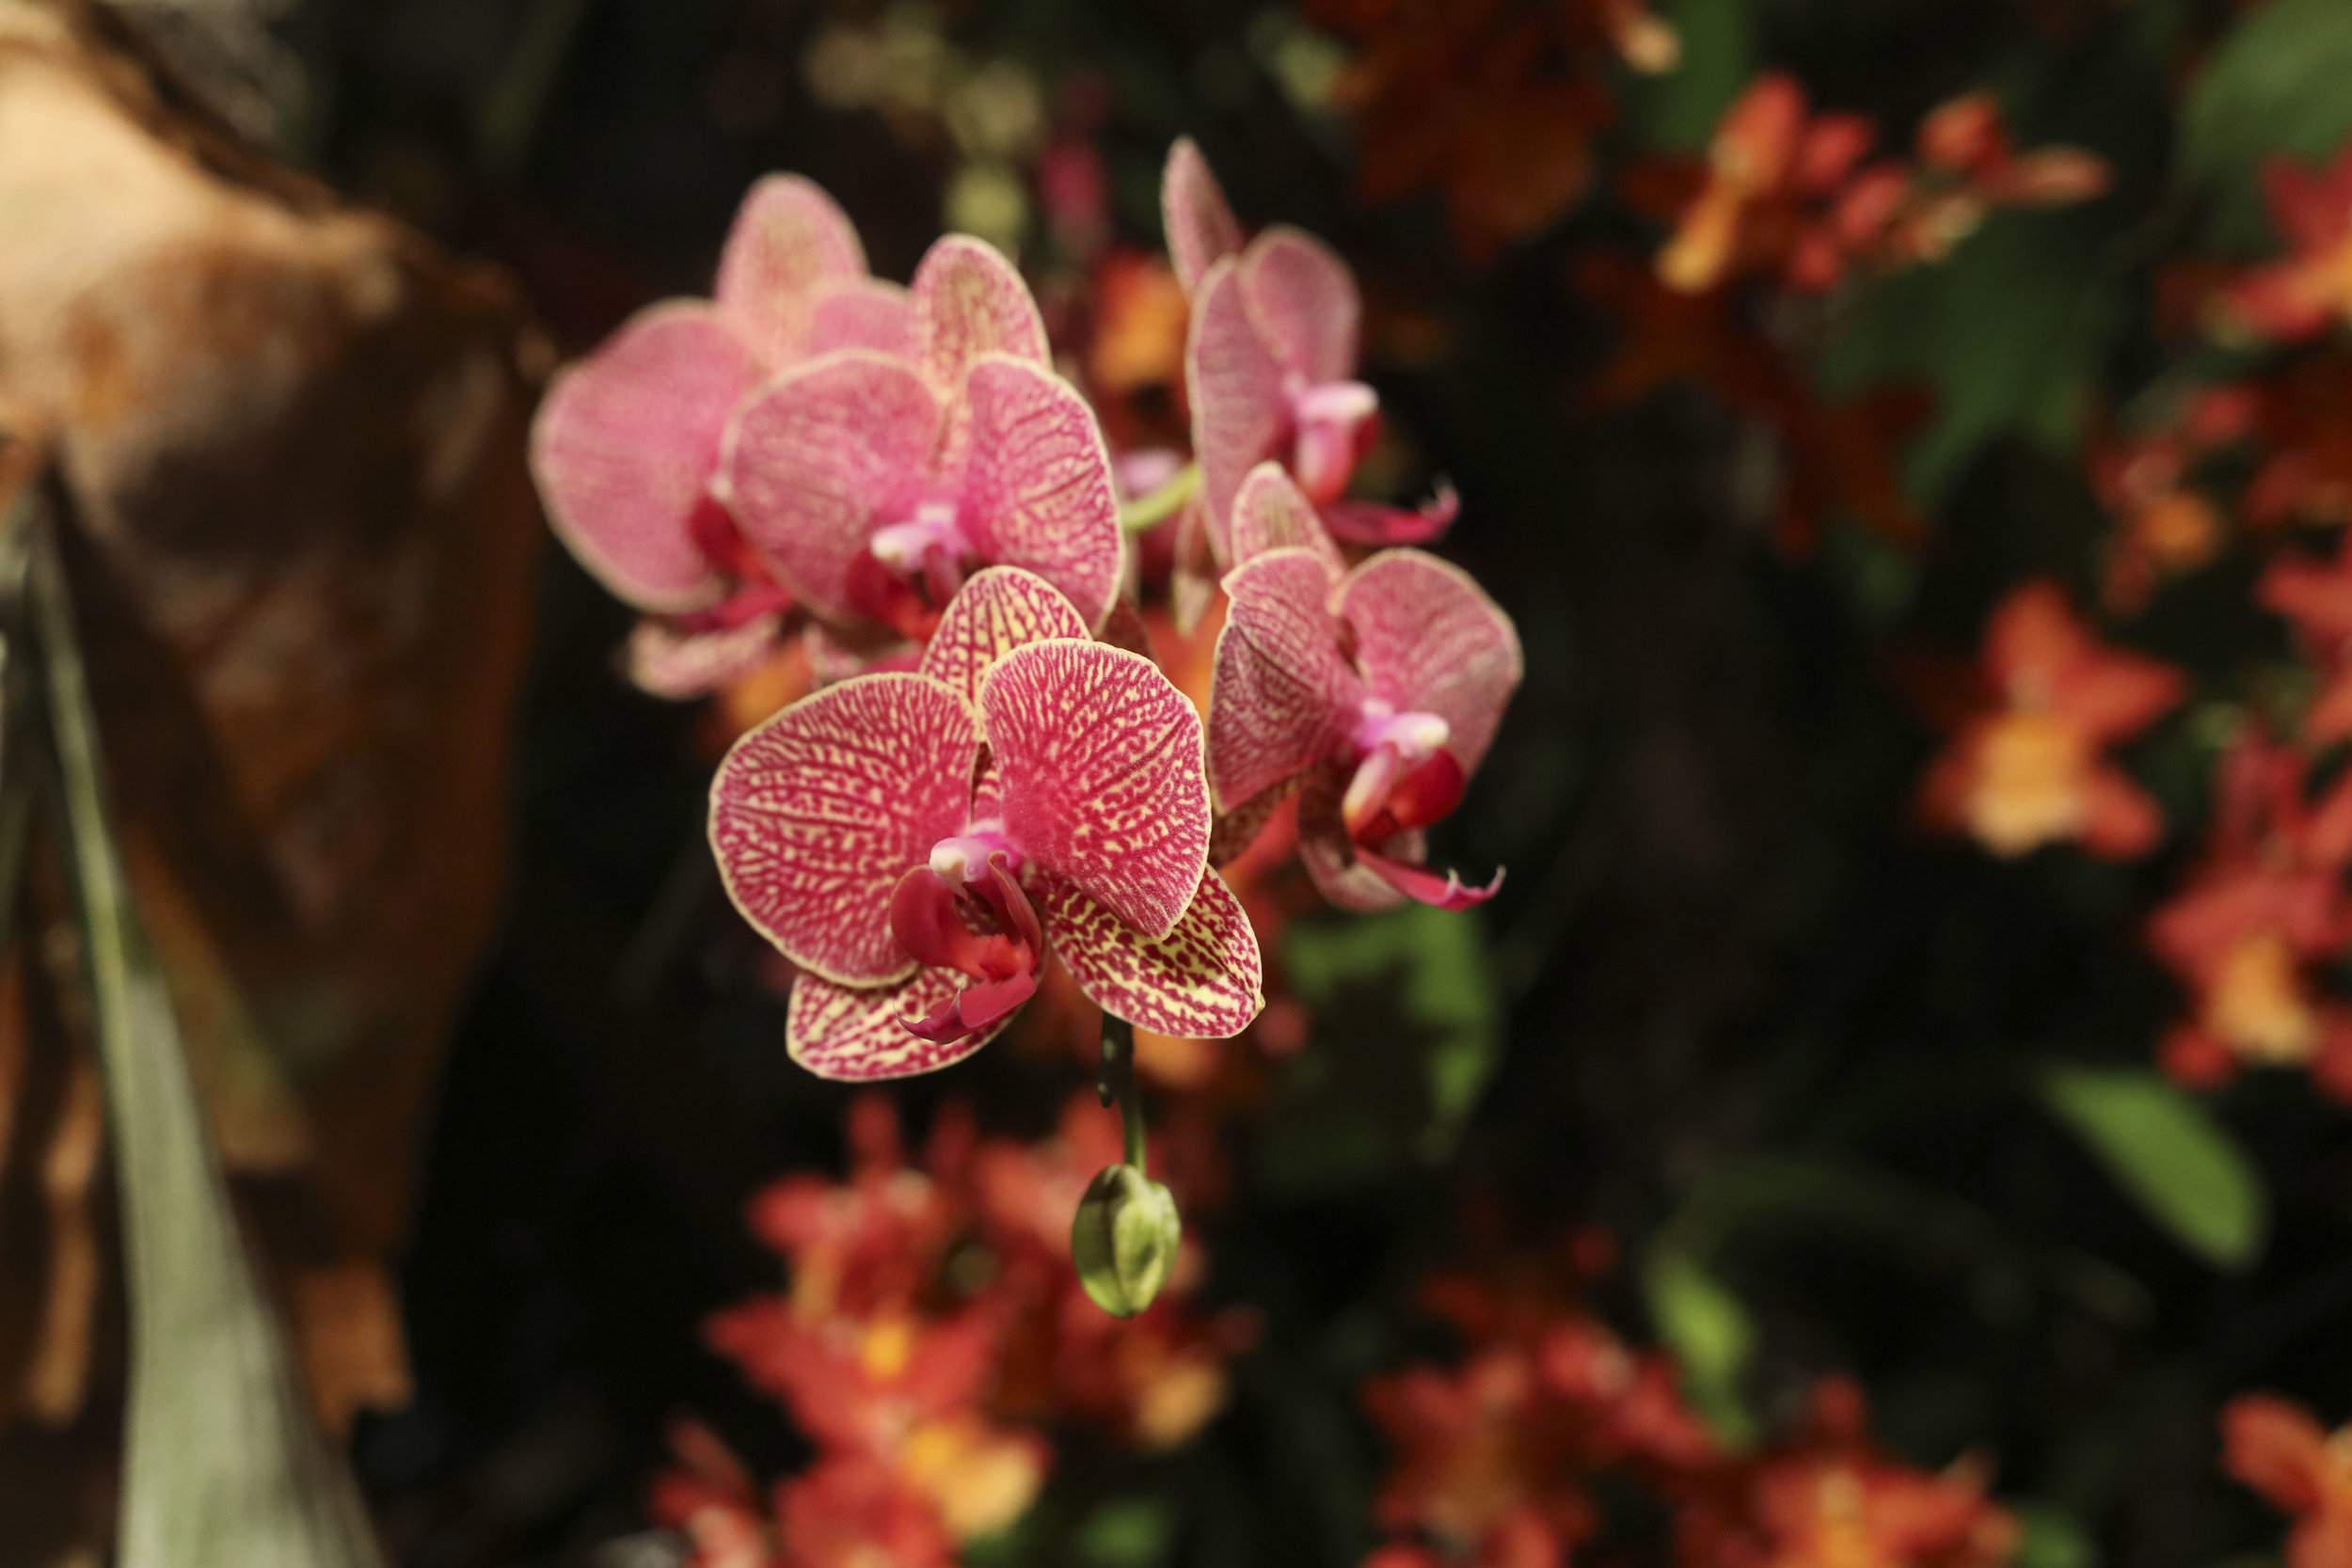 The Moth Orchid.